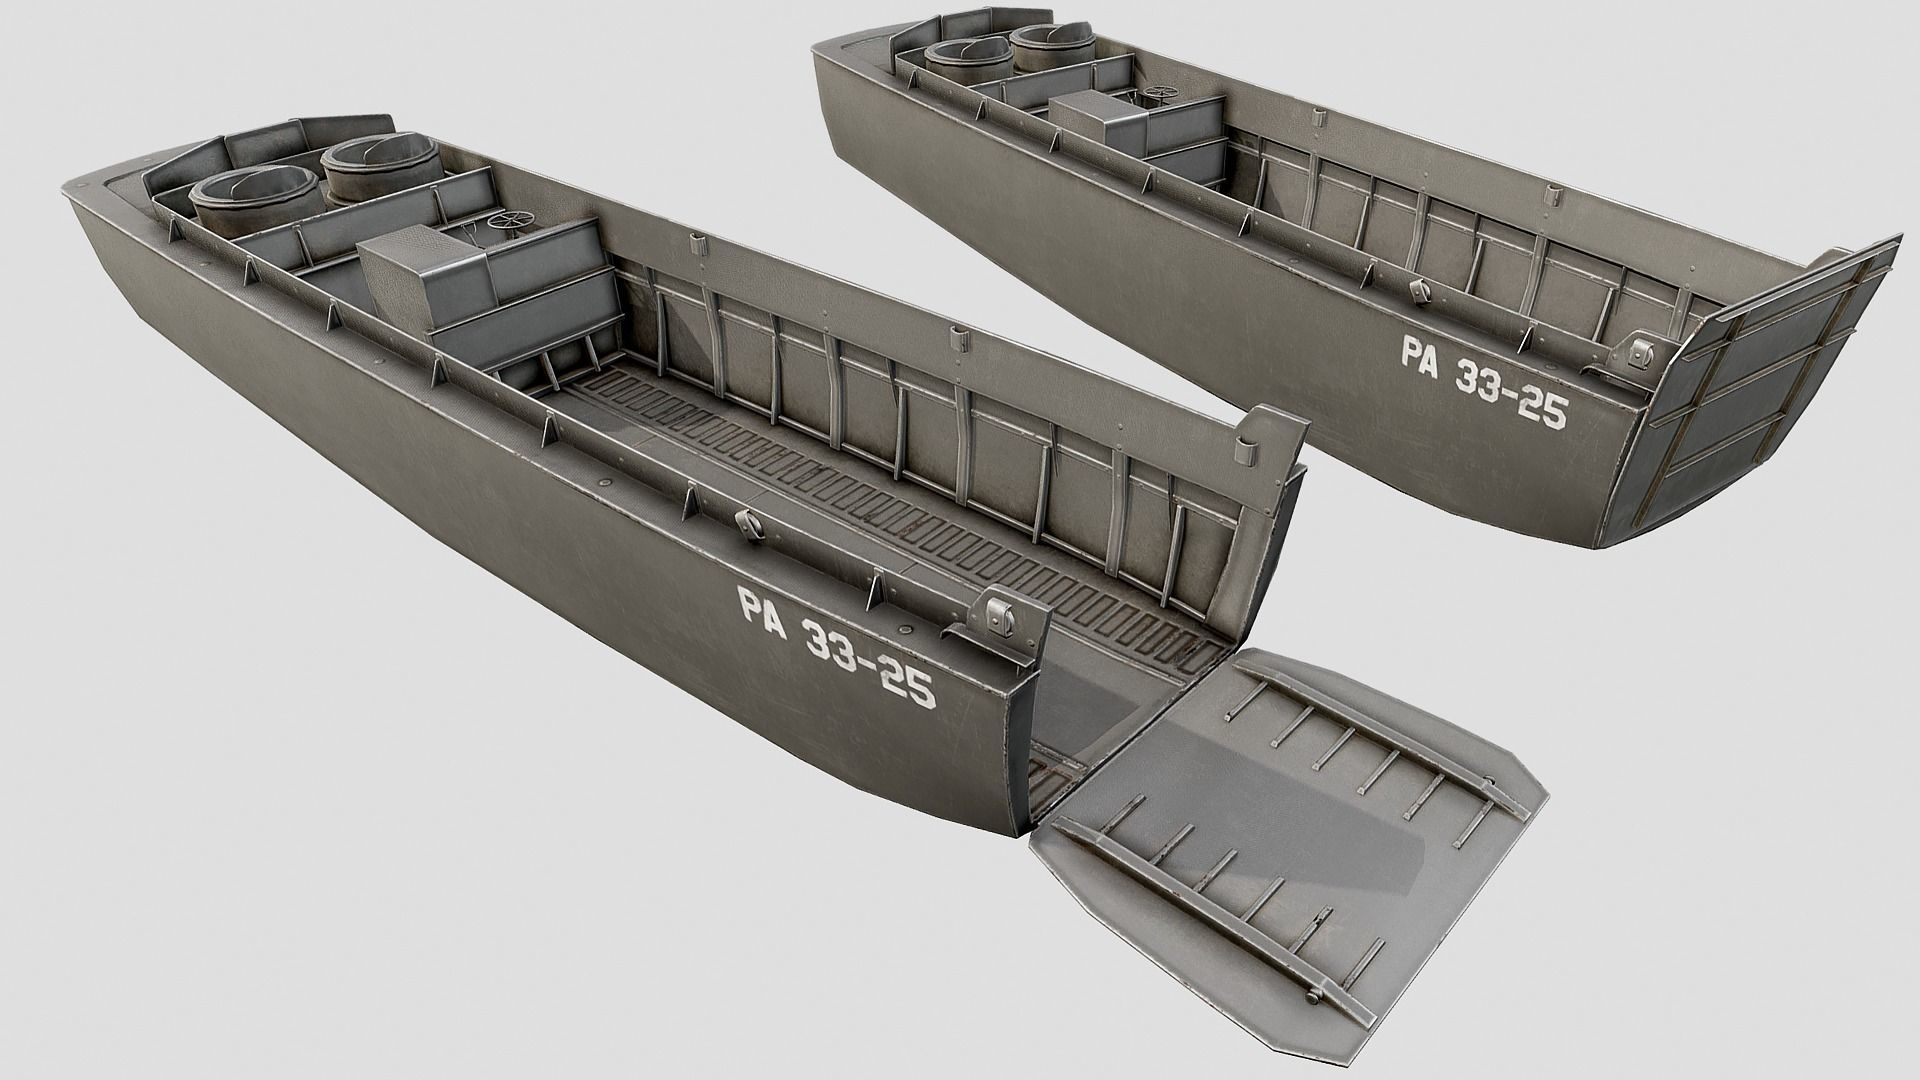 LCVP Landing Craft PBR